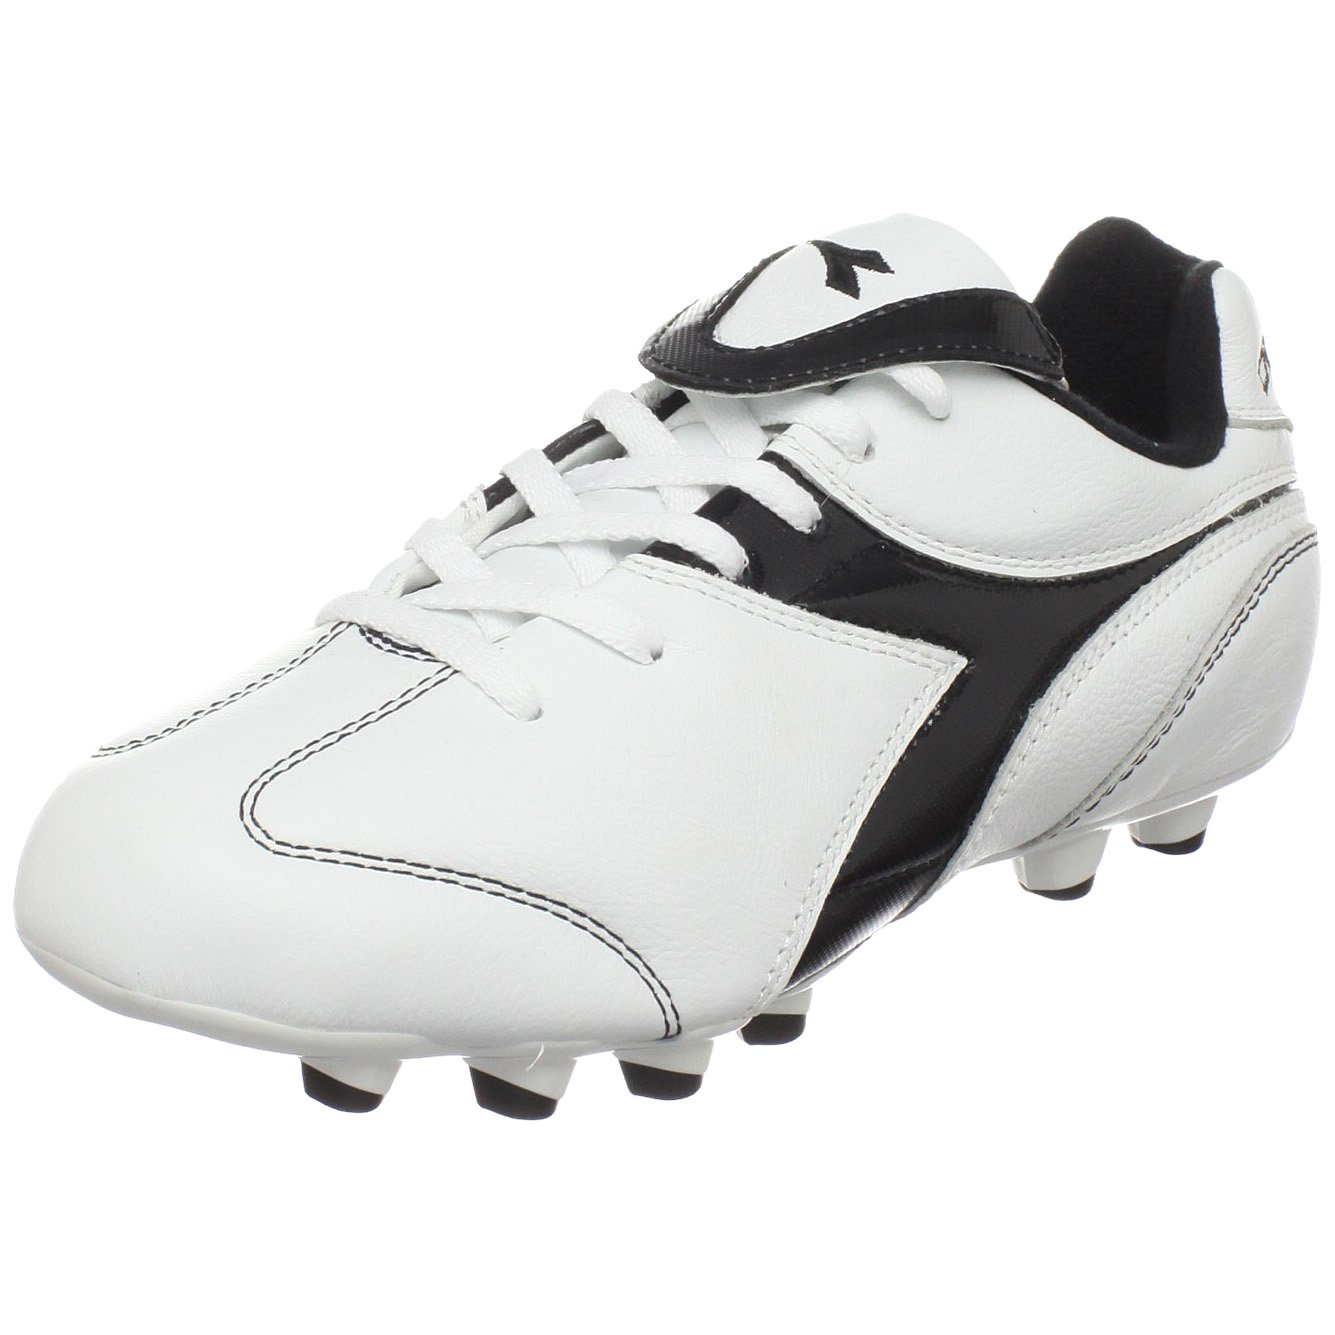 Diadora Brasil Soccer Cleat ( Little Kid / Big Kid ) B003QHZPH2 3.5 M US Big Kid|ホワイト/ブラック ホワイト/ブラック 3.5 M US Big Kid